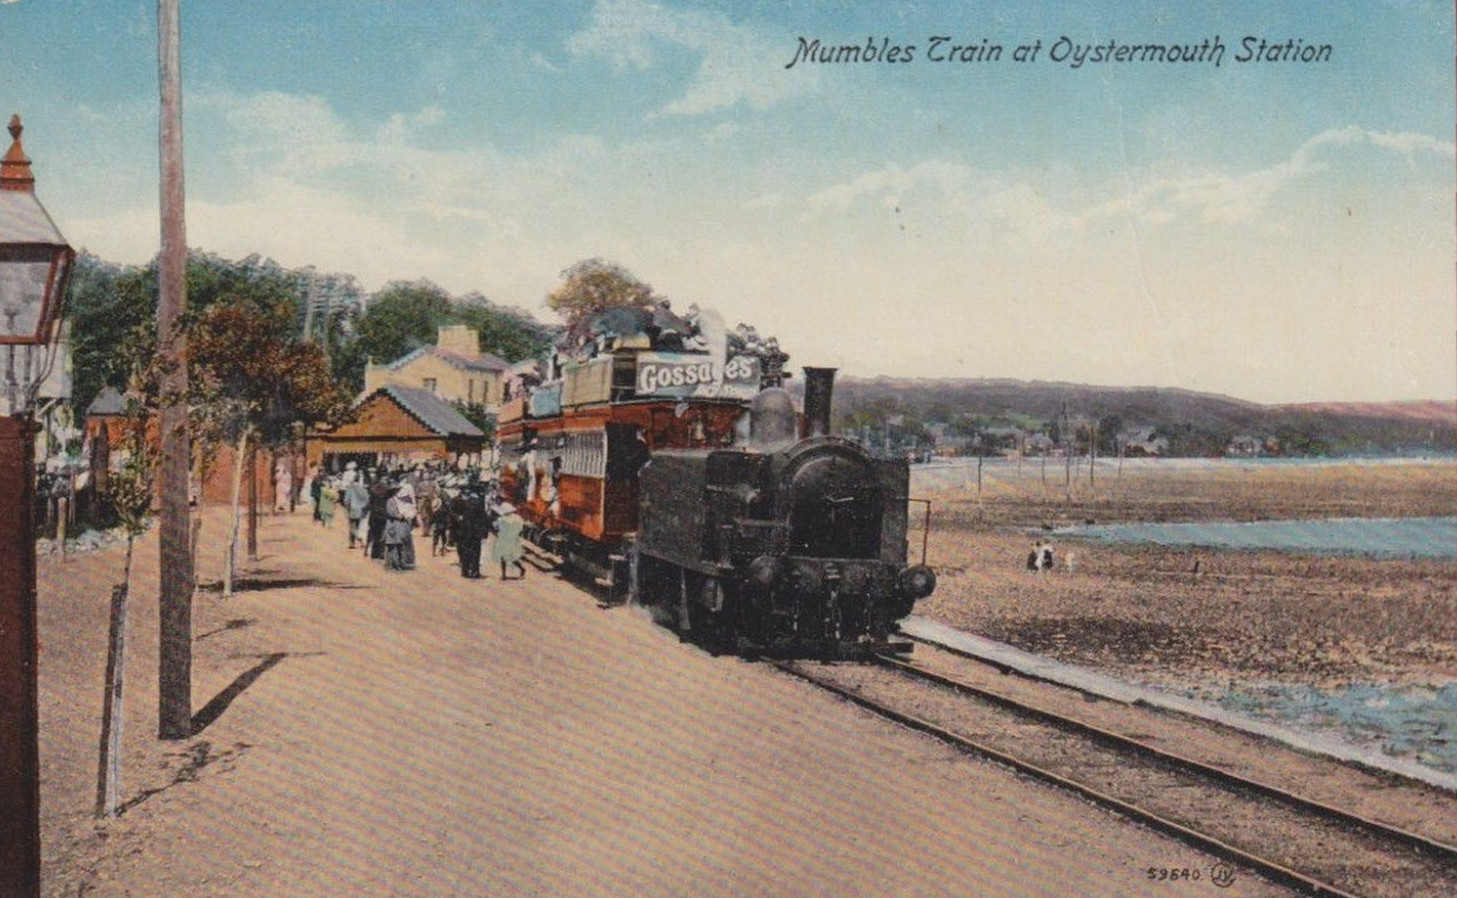 Mumbles%20Train%20at%20Oystermouth%20Station. - The Swansea & Mumbles Railway